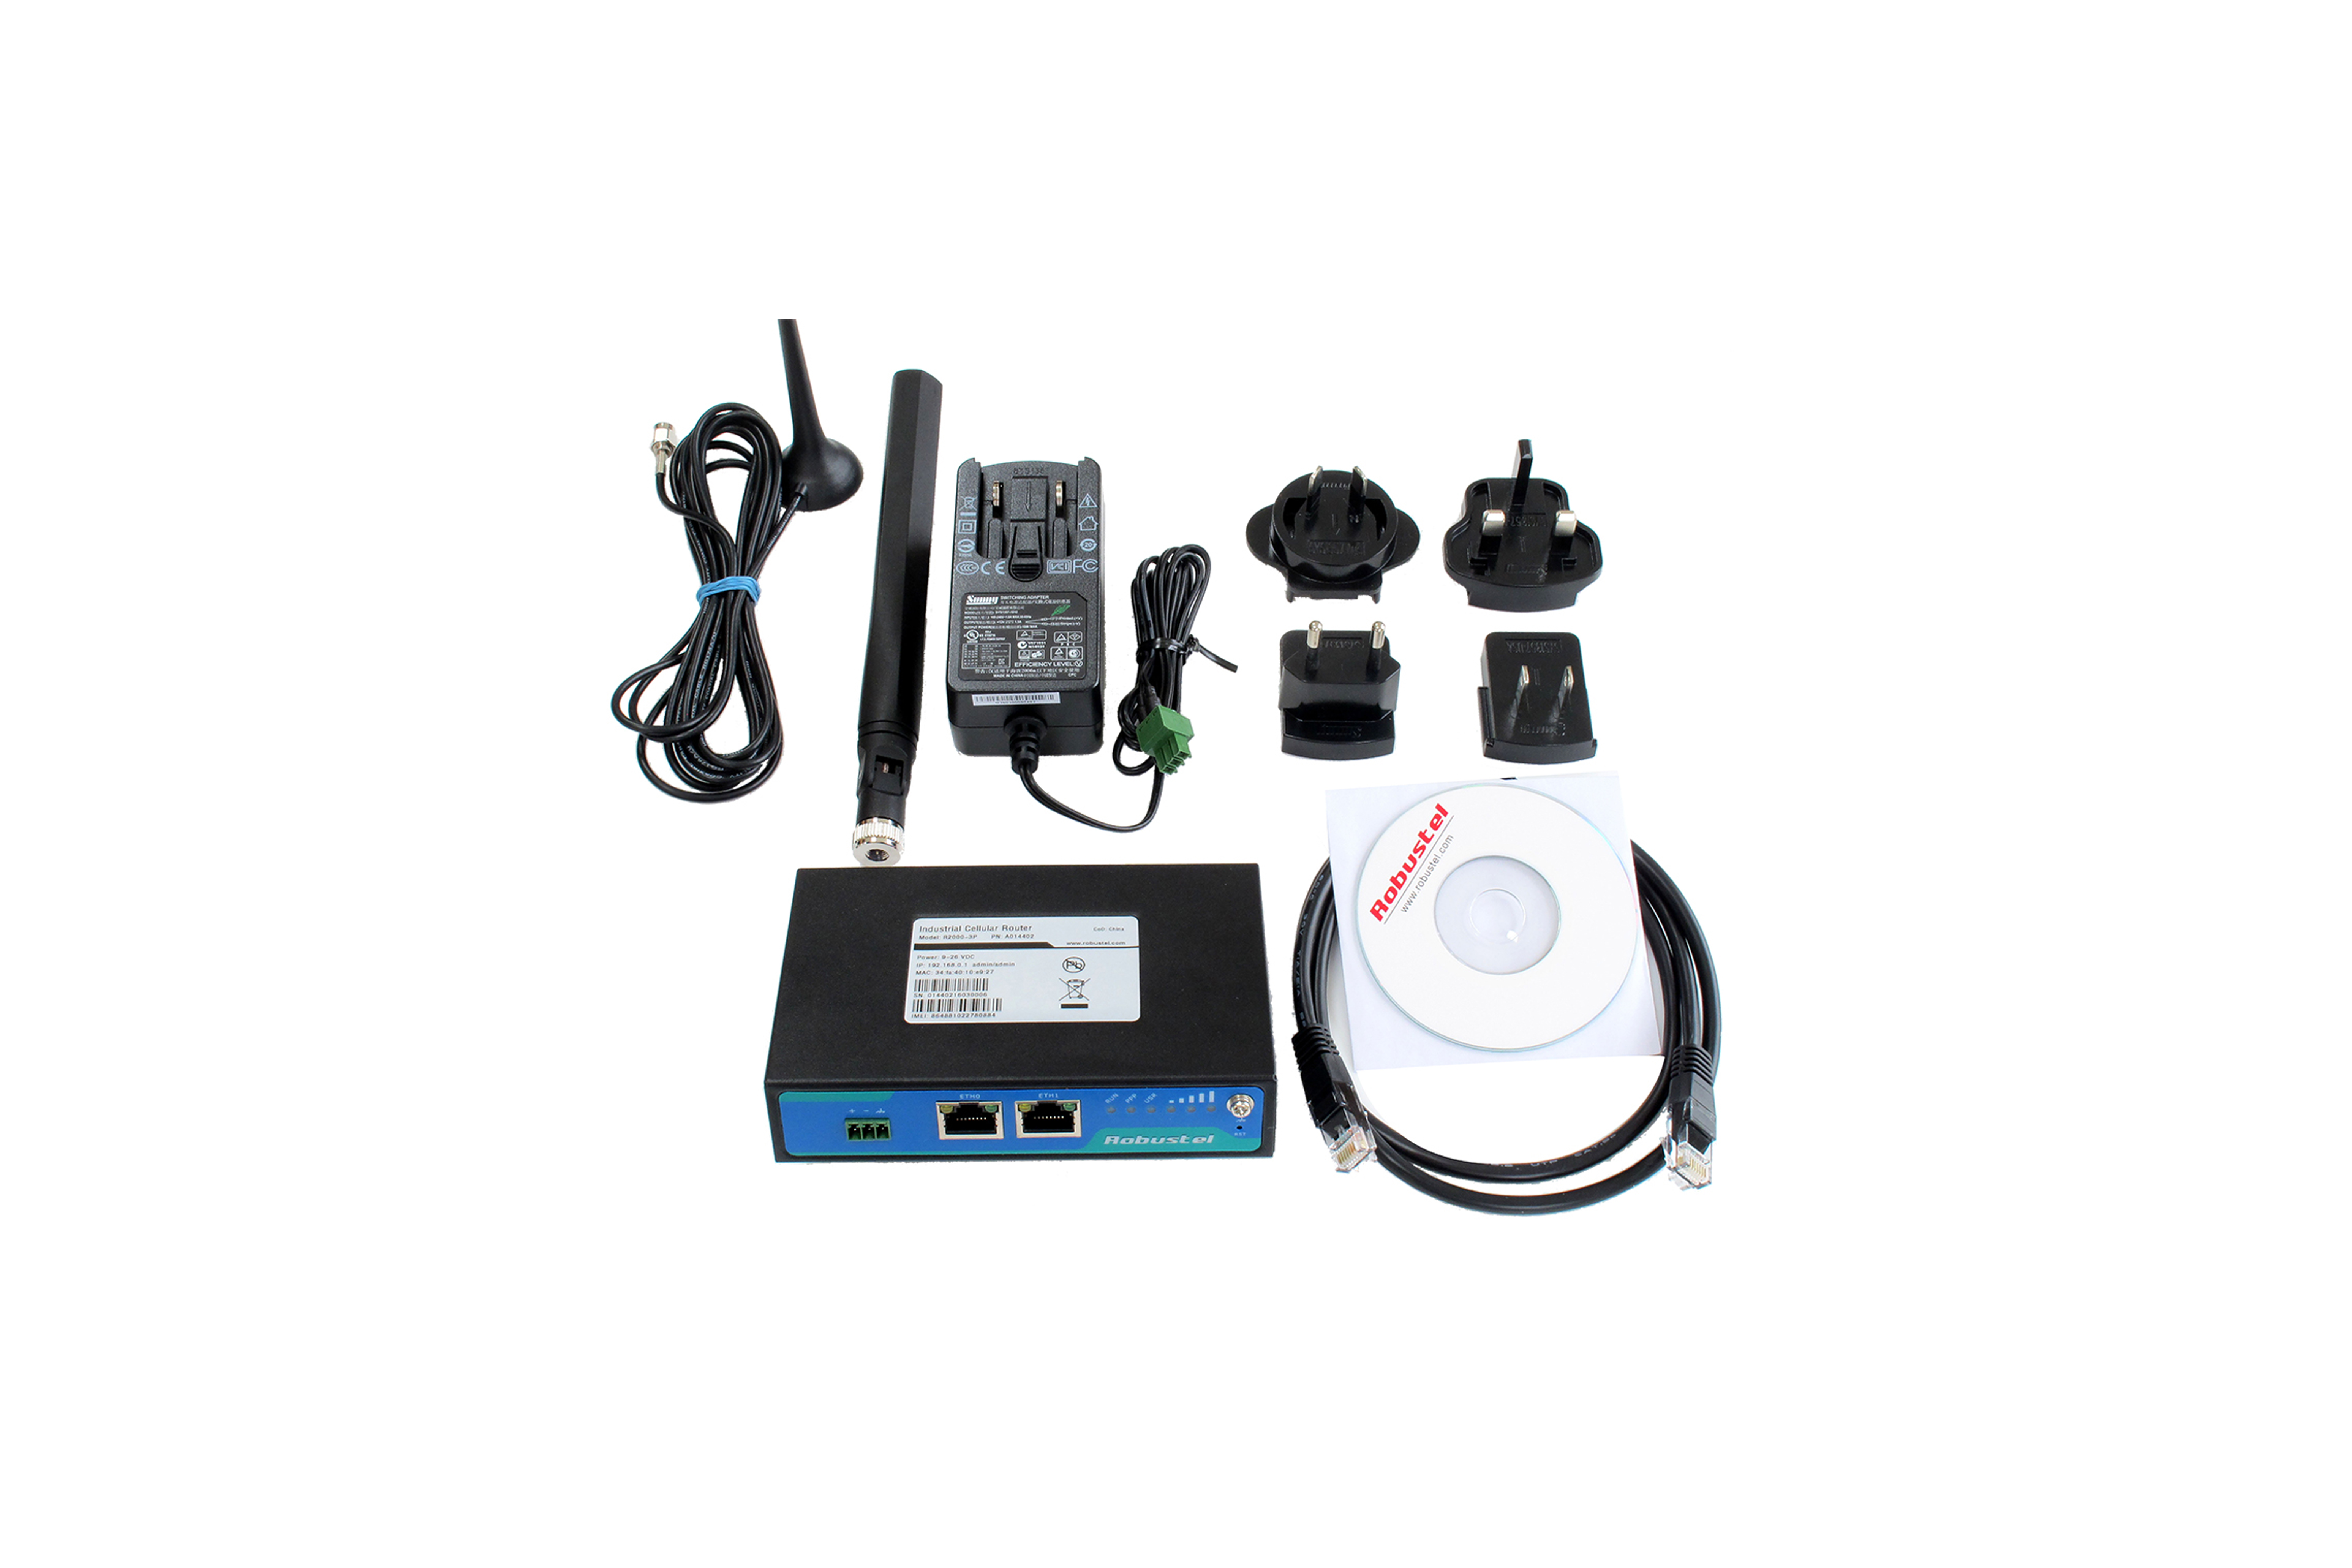 KIT BASE MODEMROUTER R2000 INDUSTRIALE